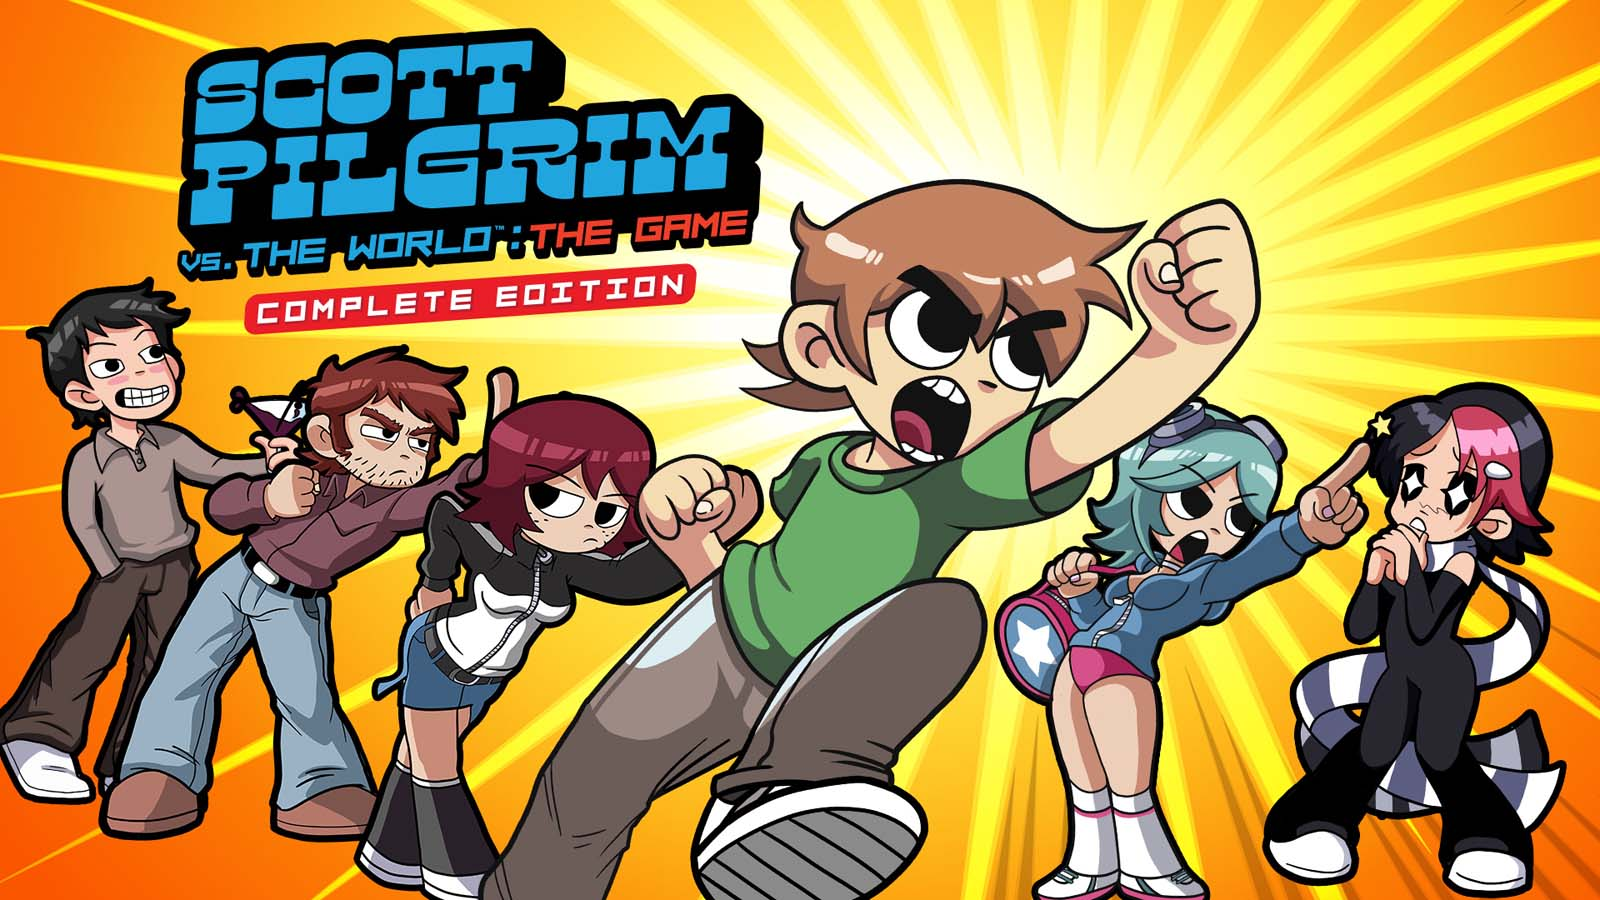 Scott Pilgrim Vs The World The Game-Complete Edition (PlayStation 5)